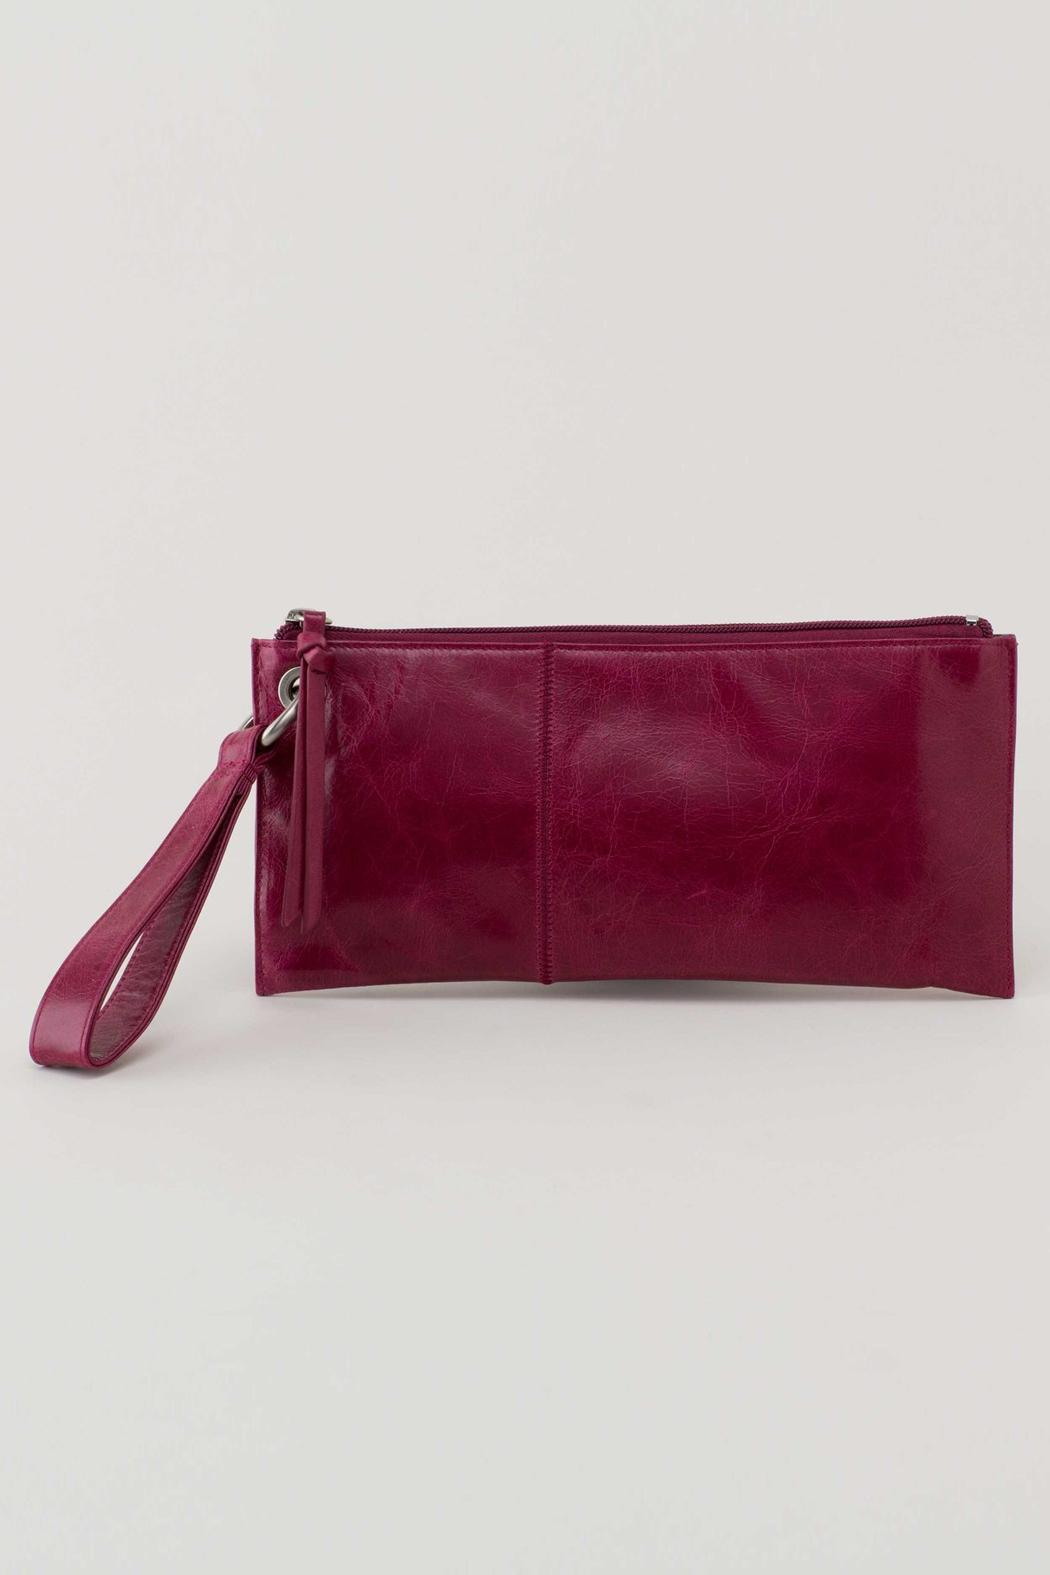 VIDA Statement Clutch - StatementClutch1001 by VIDA 66PGSzf17U